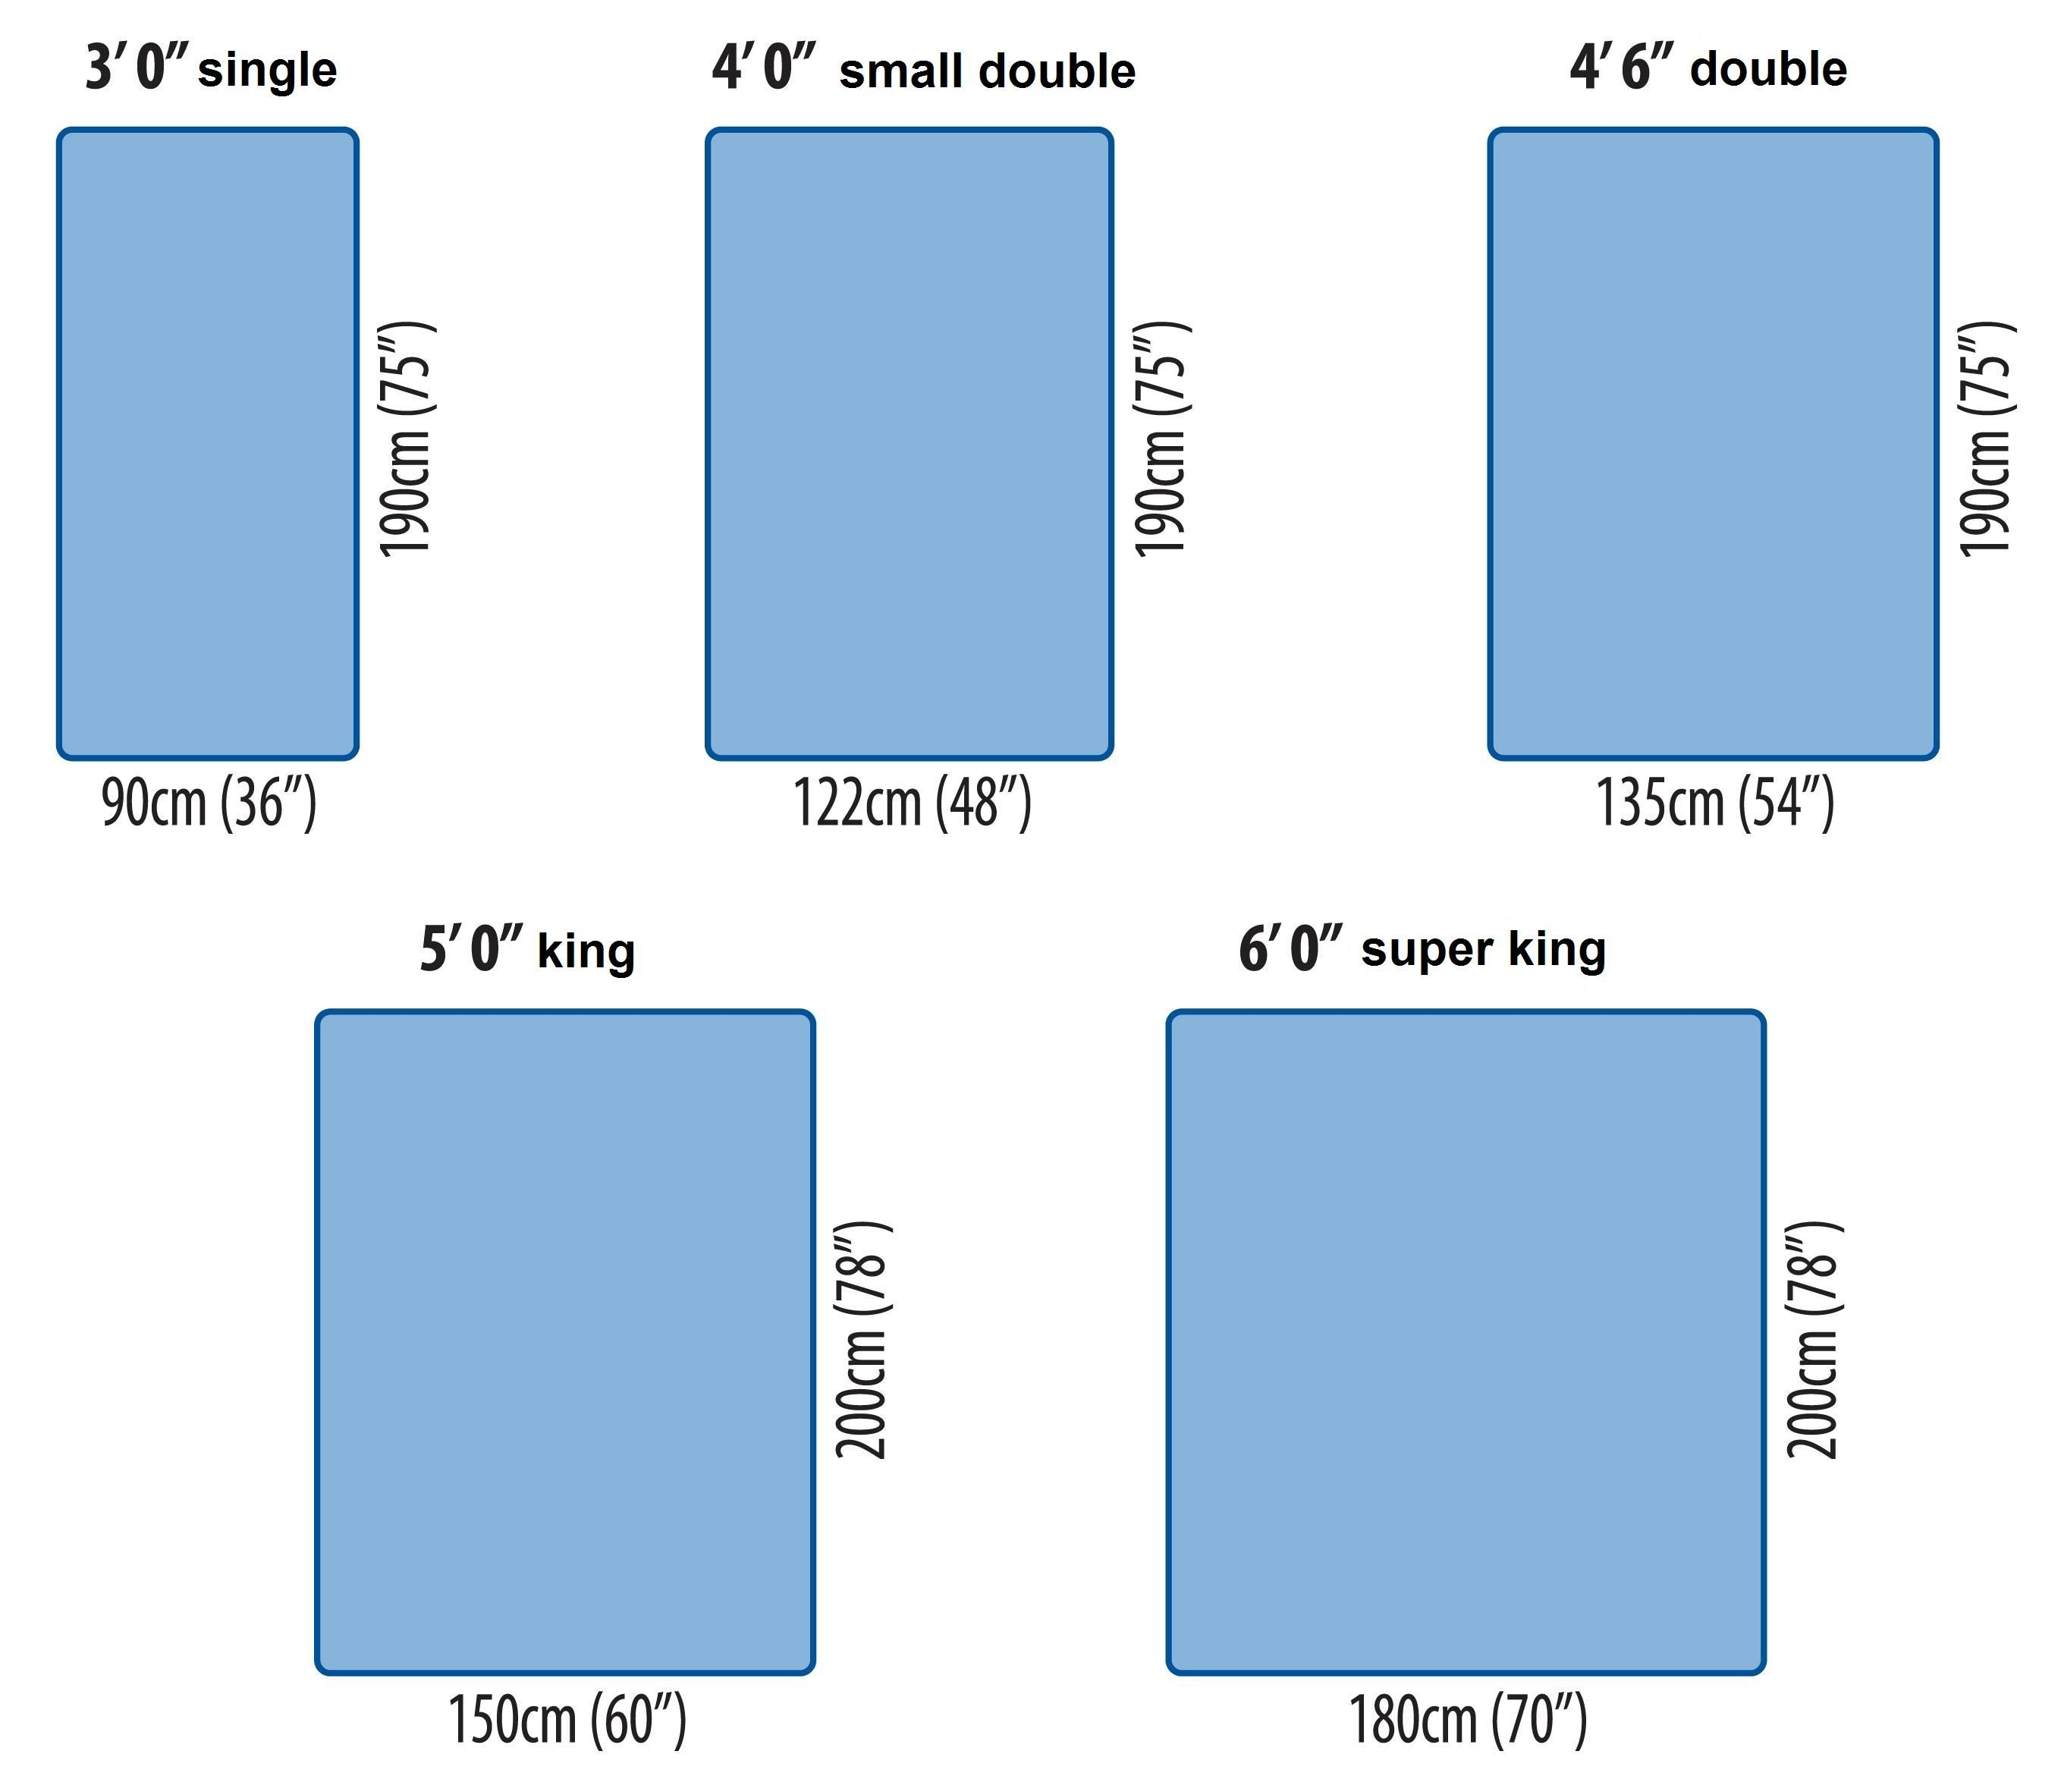 Standard Queen Size Bed Dimension Bed Sizes Are Confusing Interior Design Major King Size Bed